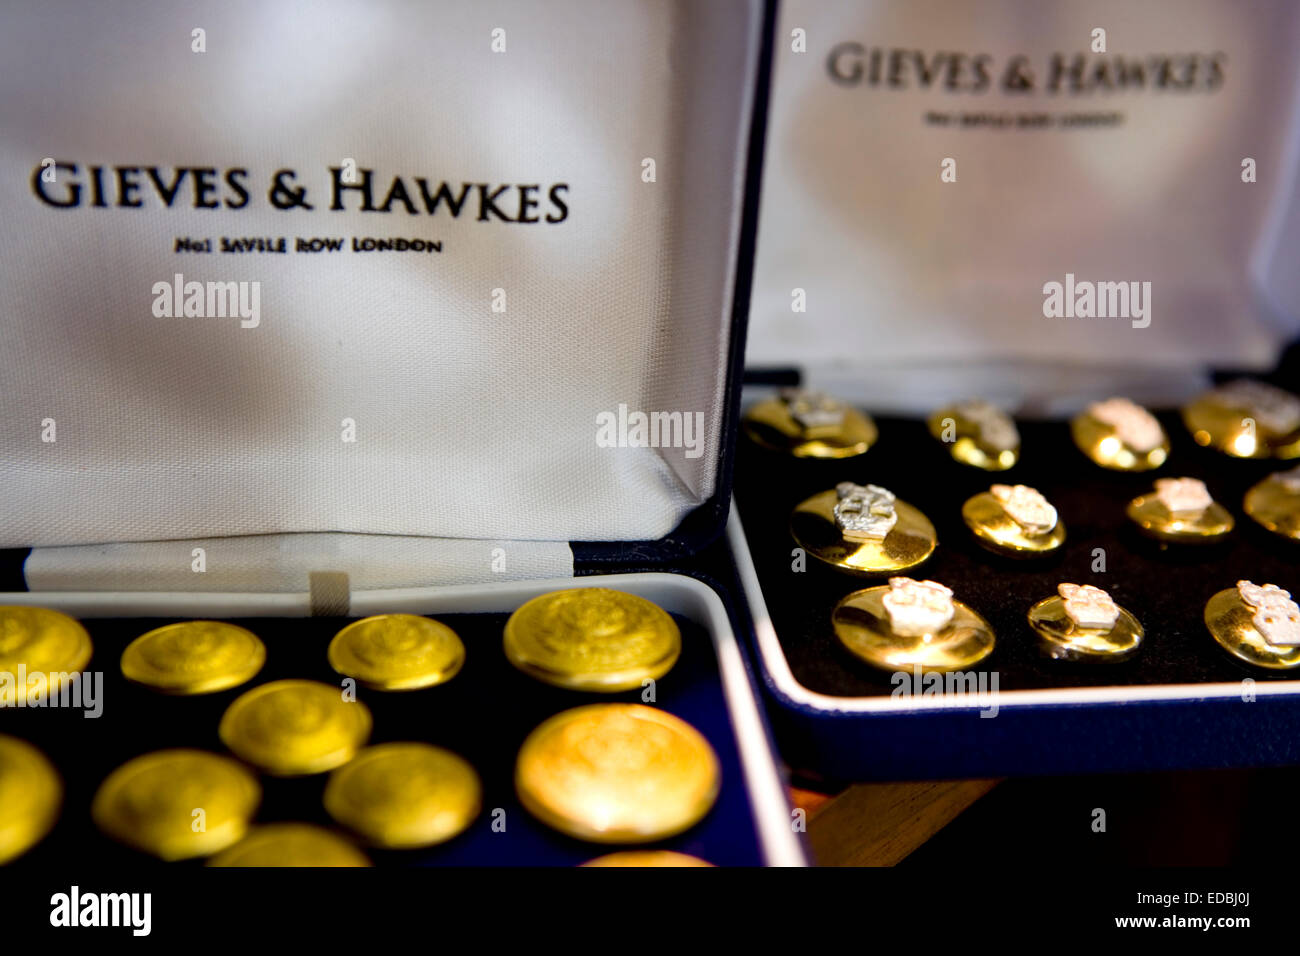 Close-up picture of accesories in the flagship Gieves & Hawkes on Savile Row, London. - Stock Image